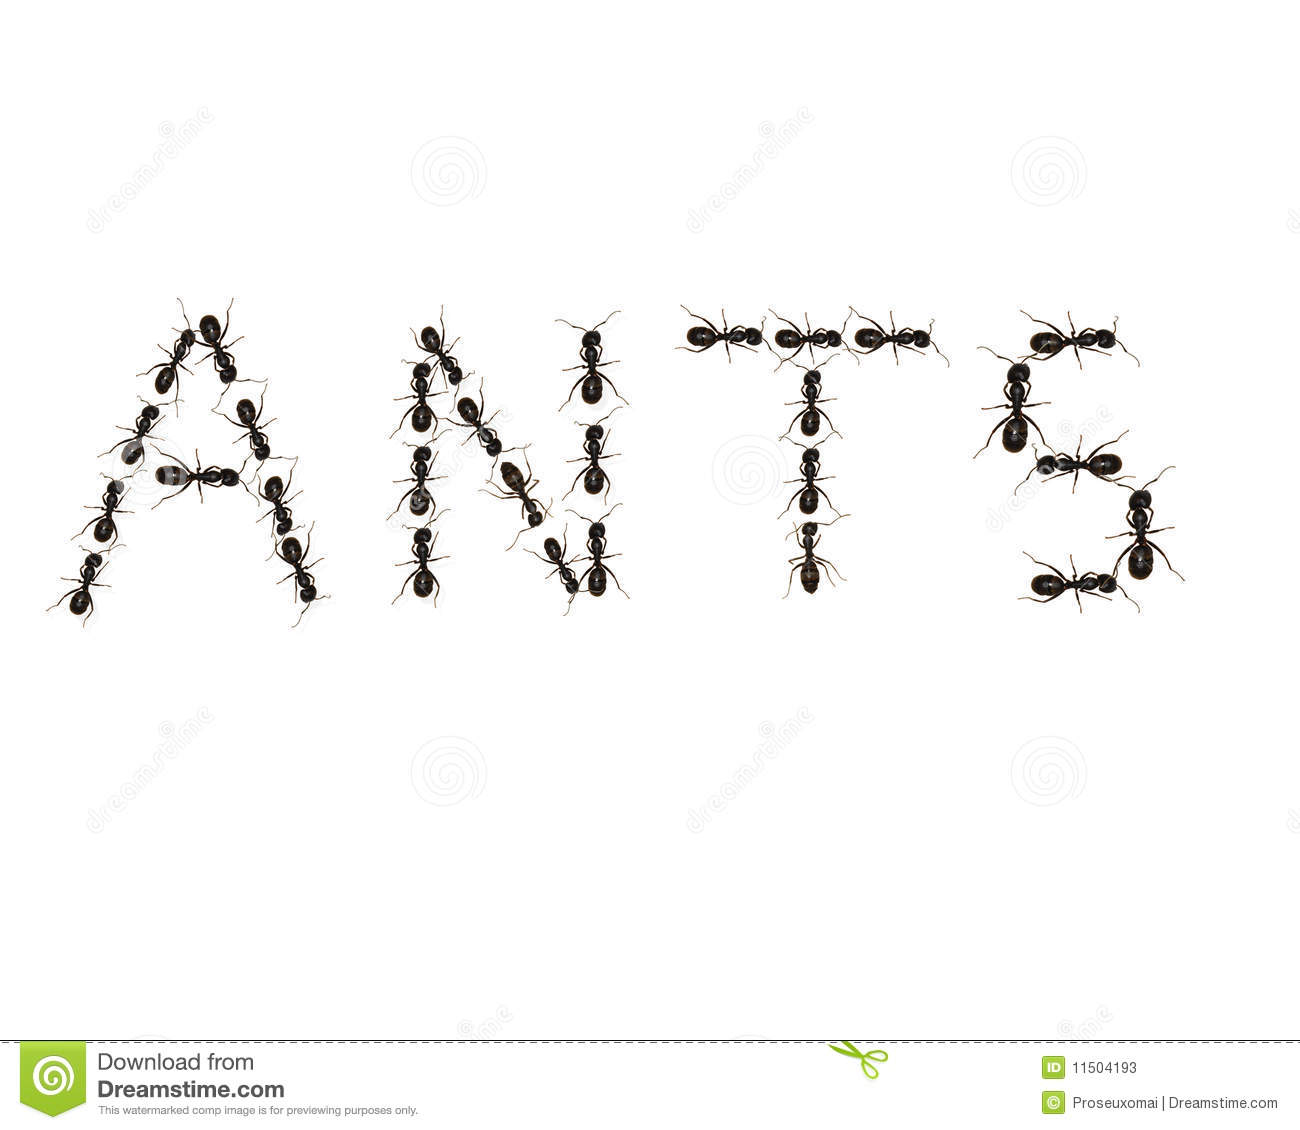 Ants are crawling over a white background forming the word ANTS.